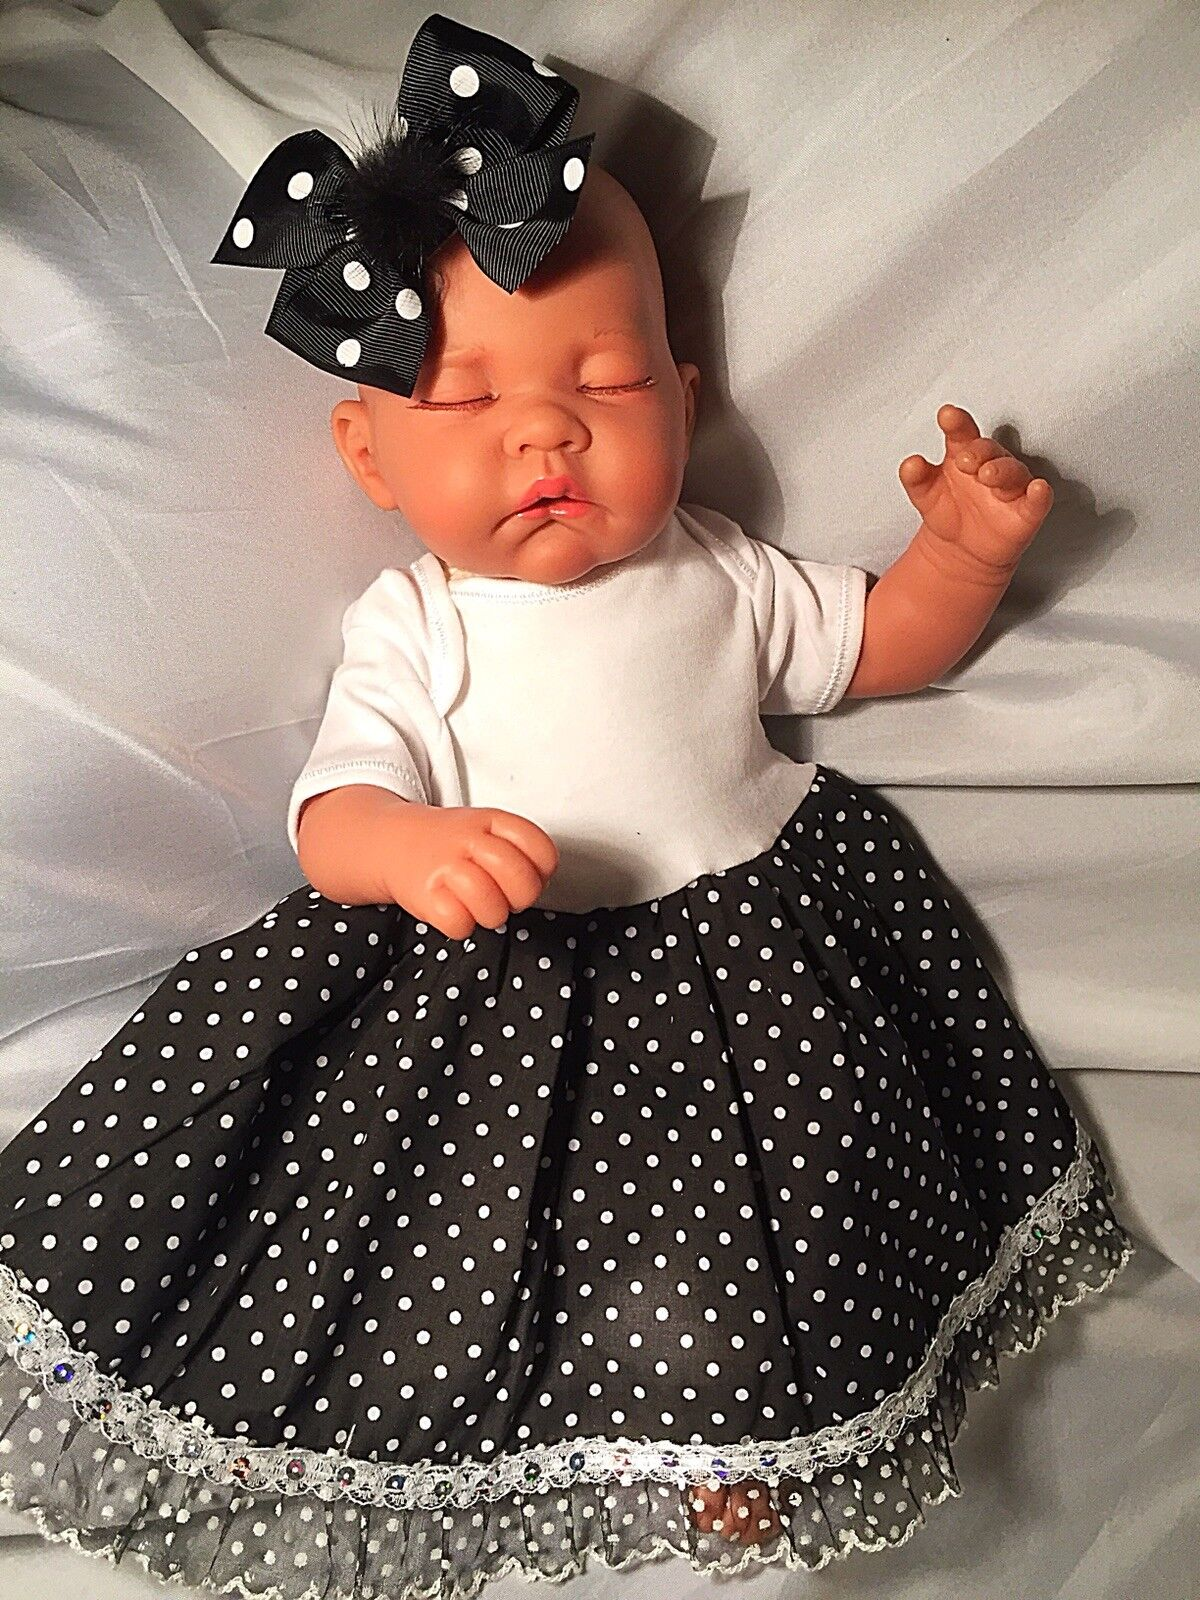 HANDMADE CLOTHES FOR,REBORNS & BABY DOLLS 18-22 inch Dress Headband Shoes